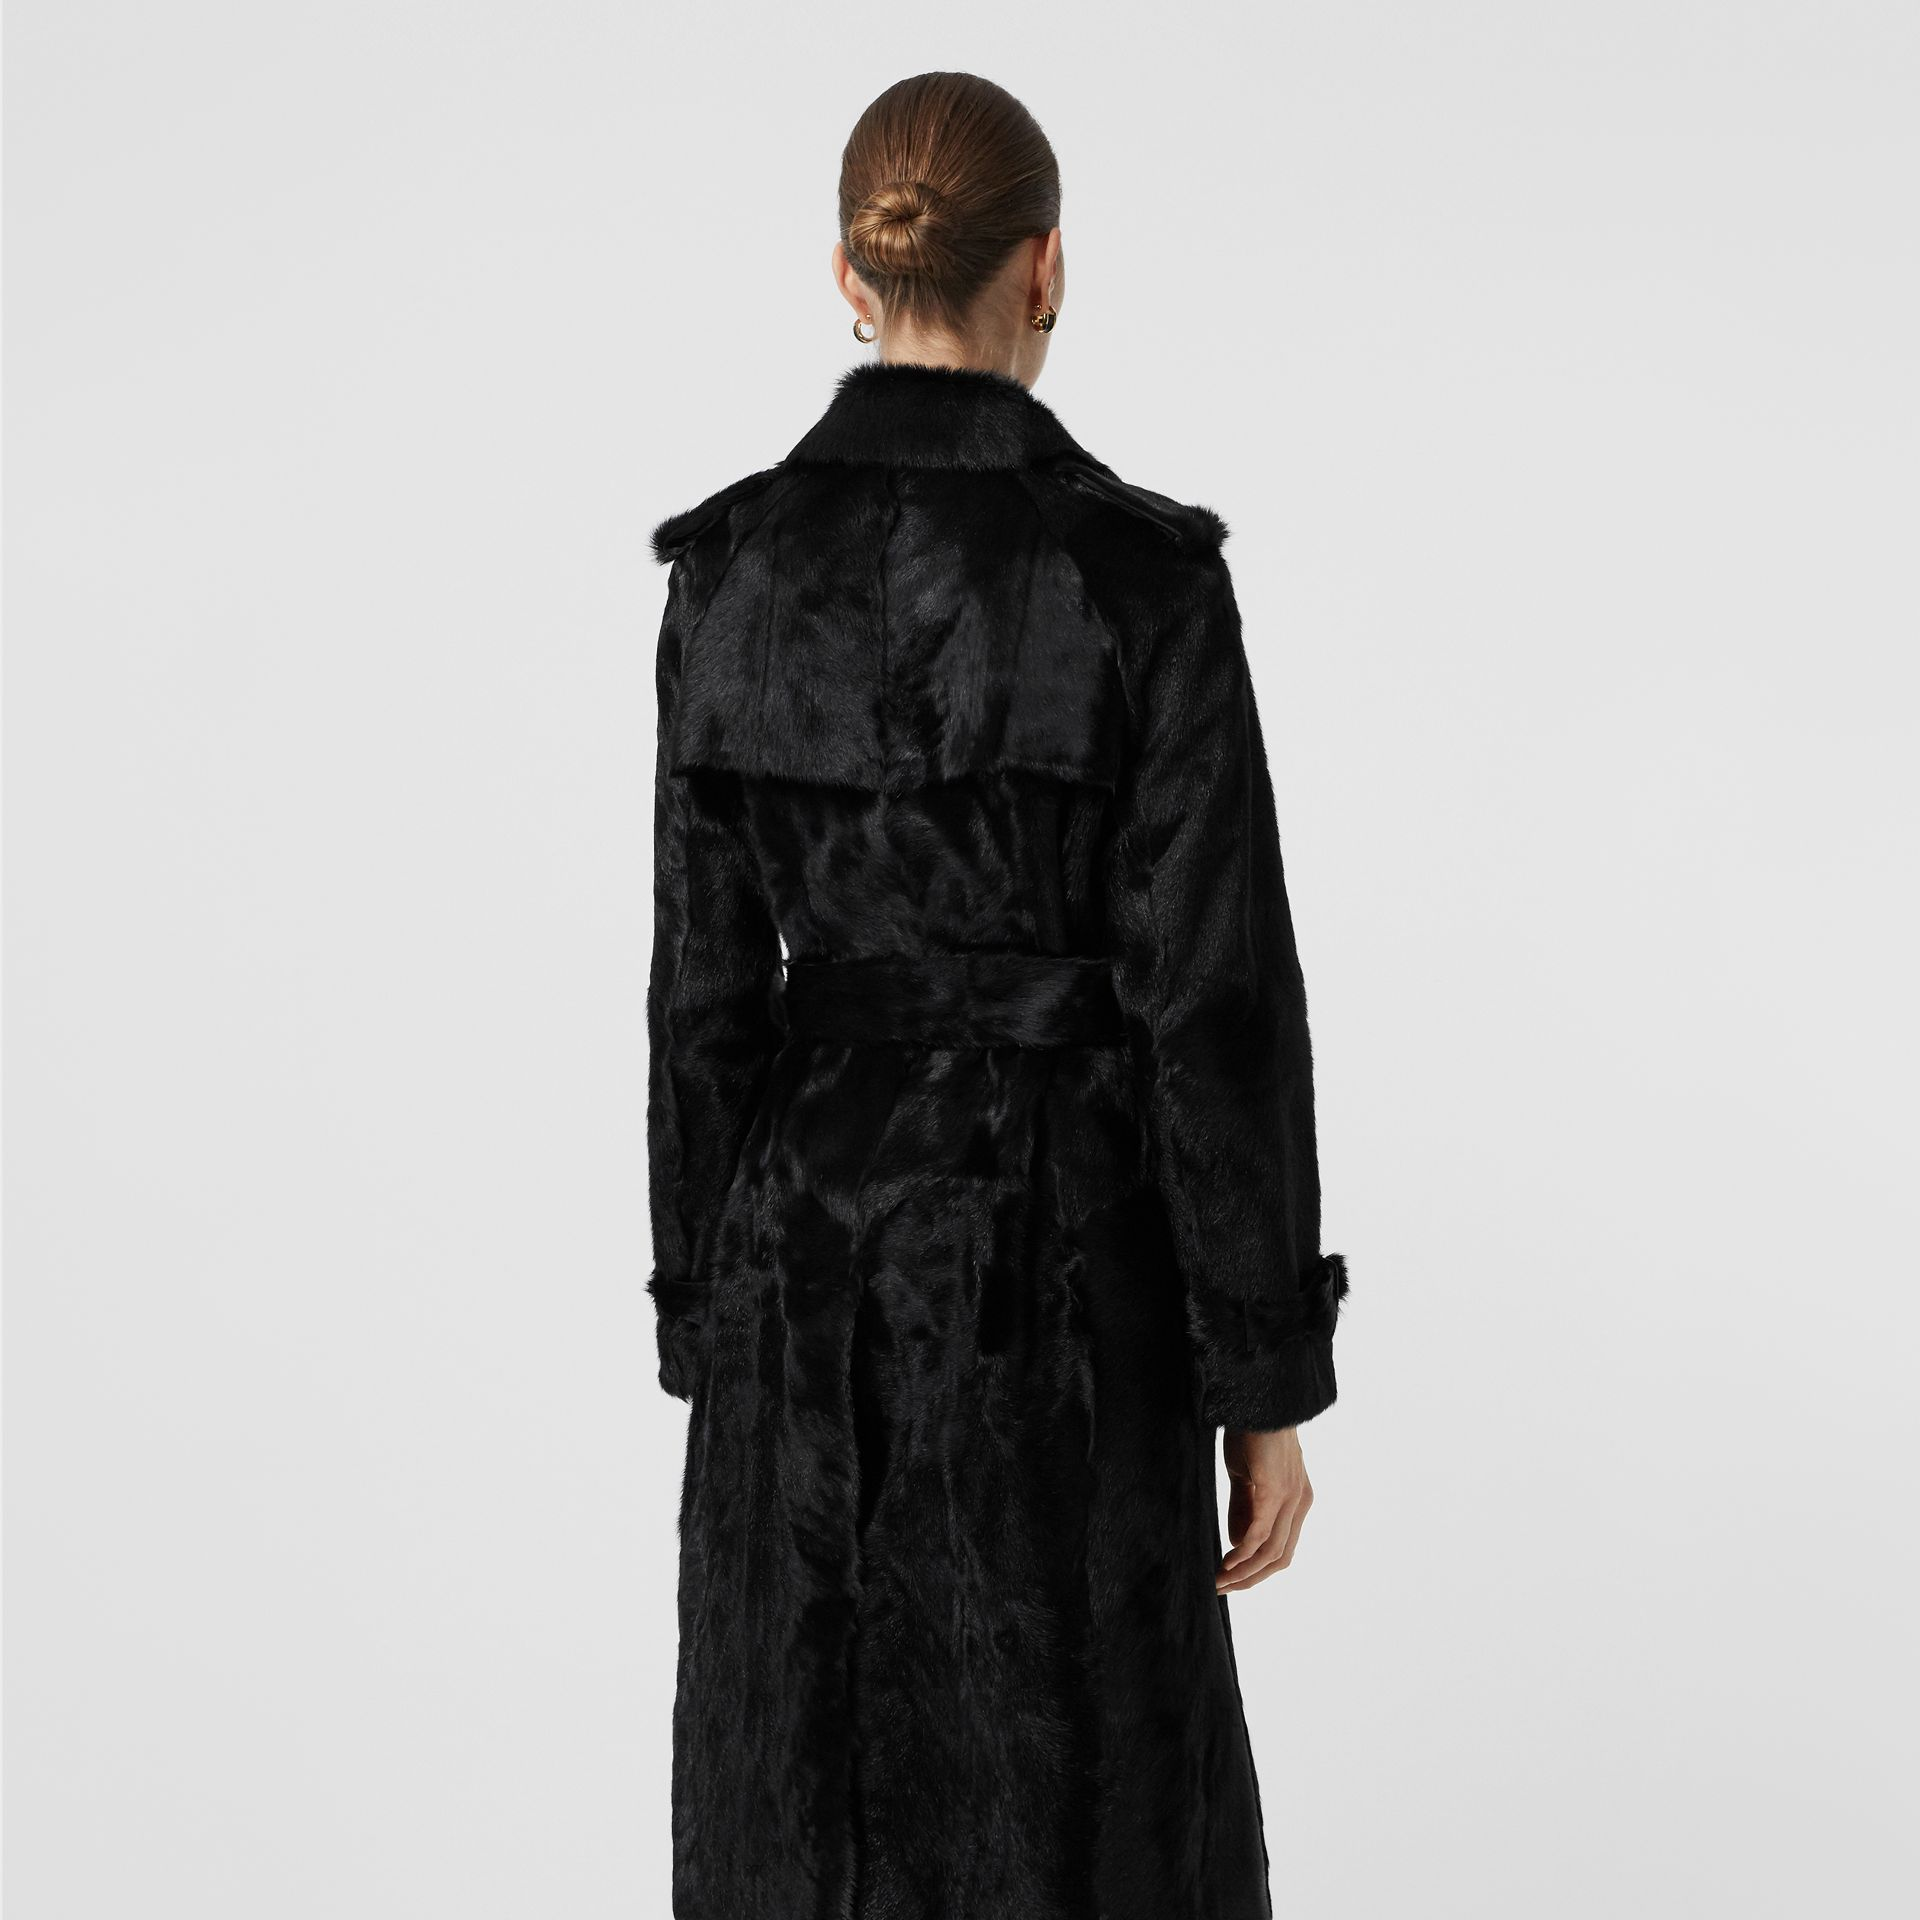 Goat Trench Coat in Black - Women | Burberry Australia - gallery image 2